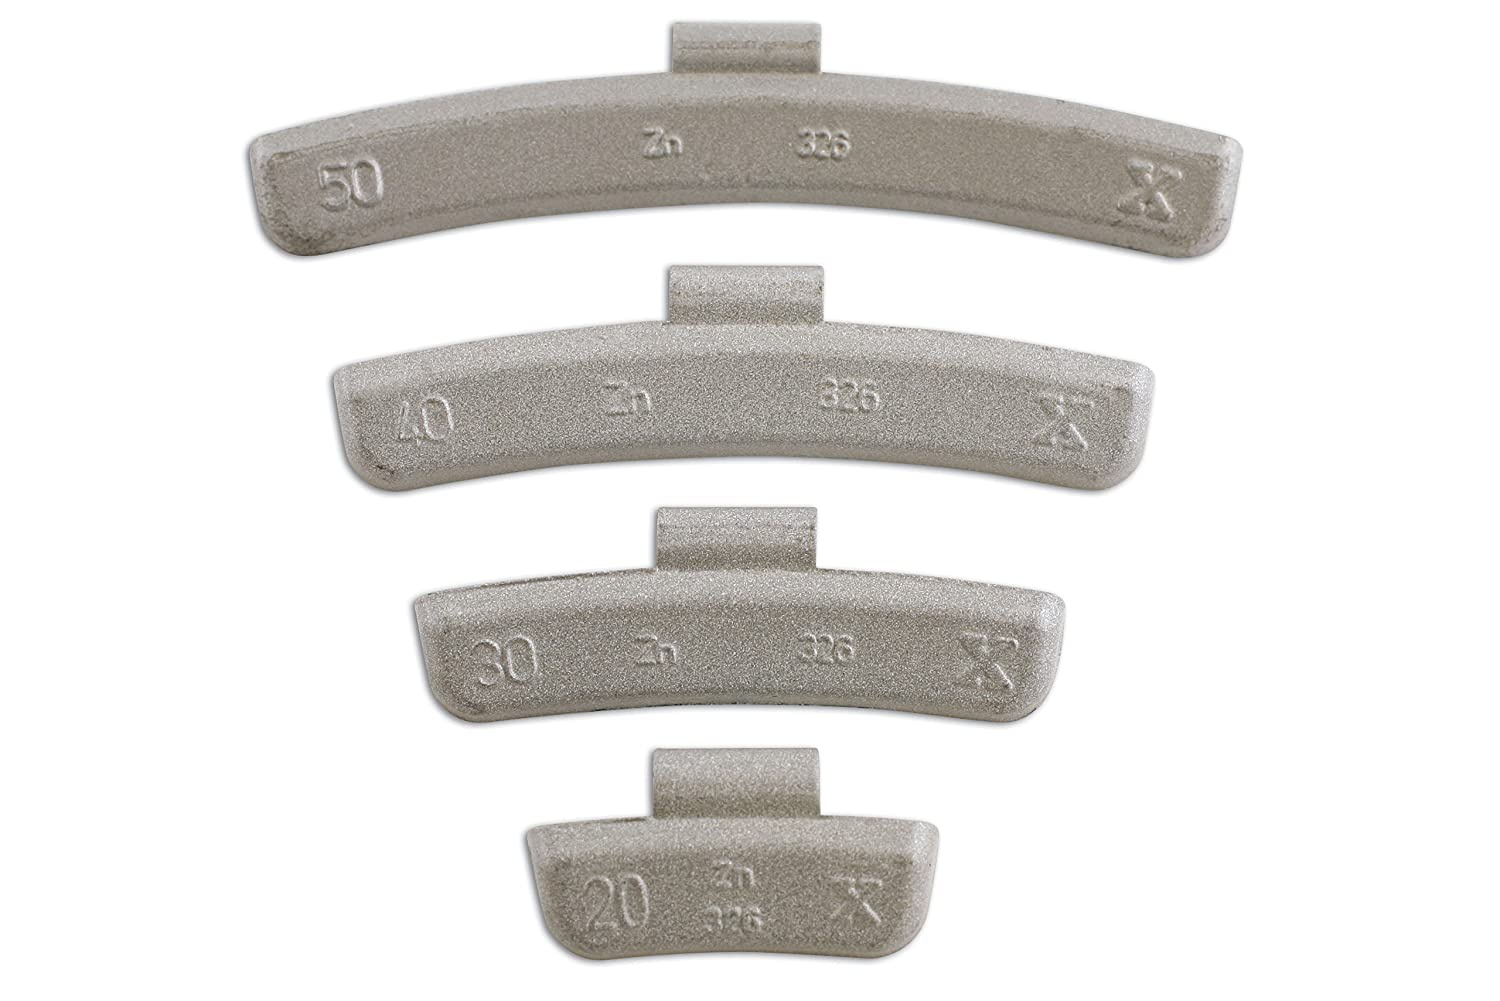 Connect 32856 20g Wheel Weights for Alloy Wheels (Box of 100) The Tool Connection Ltd.